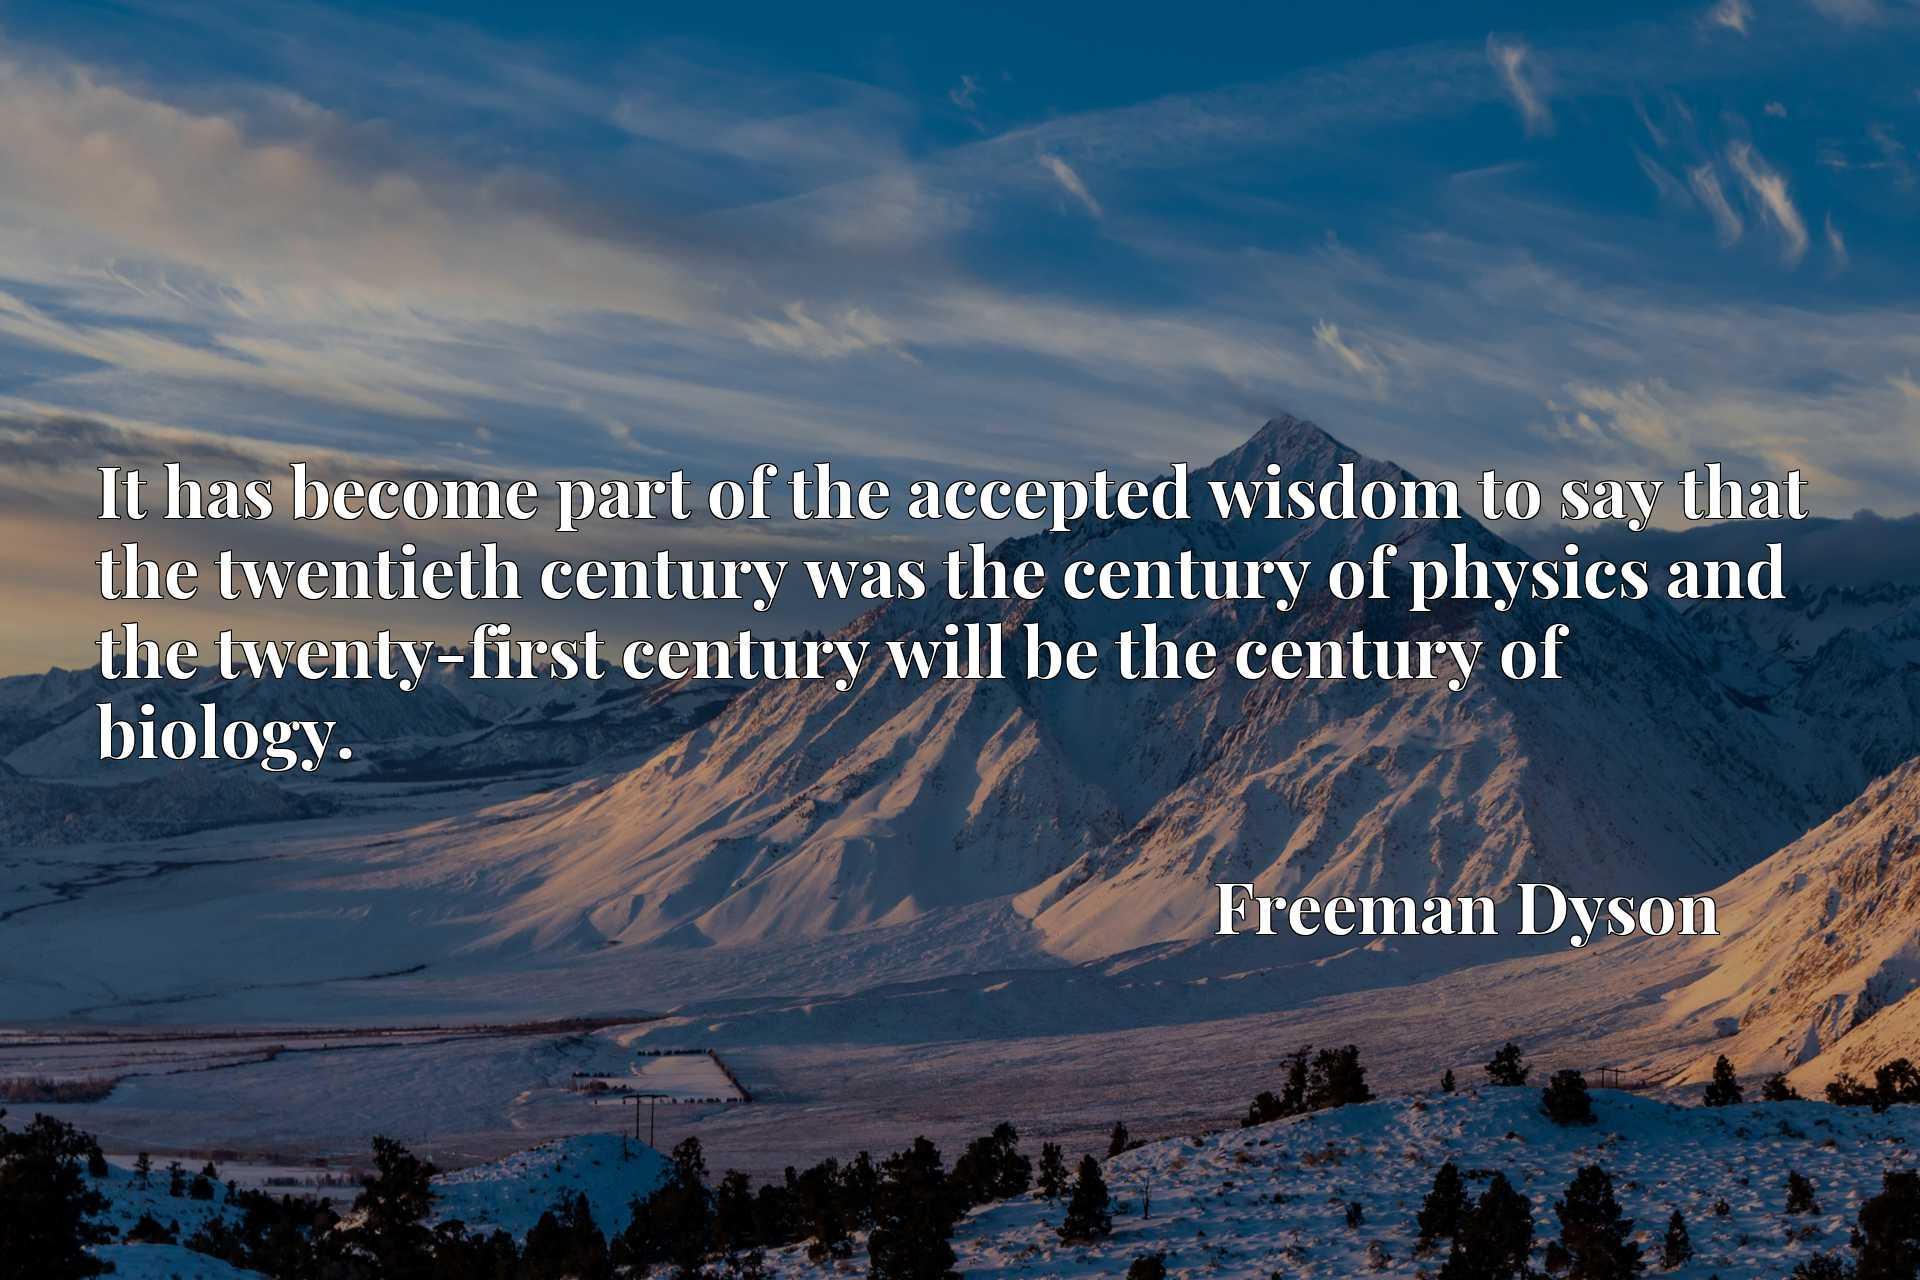 It has become part of the accepted wisdom to say that the twentieth century was the century of physics and the twenty-first century will be the century of biology.